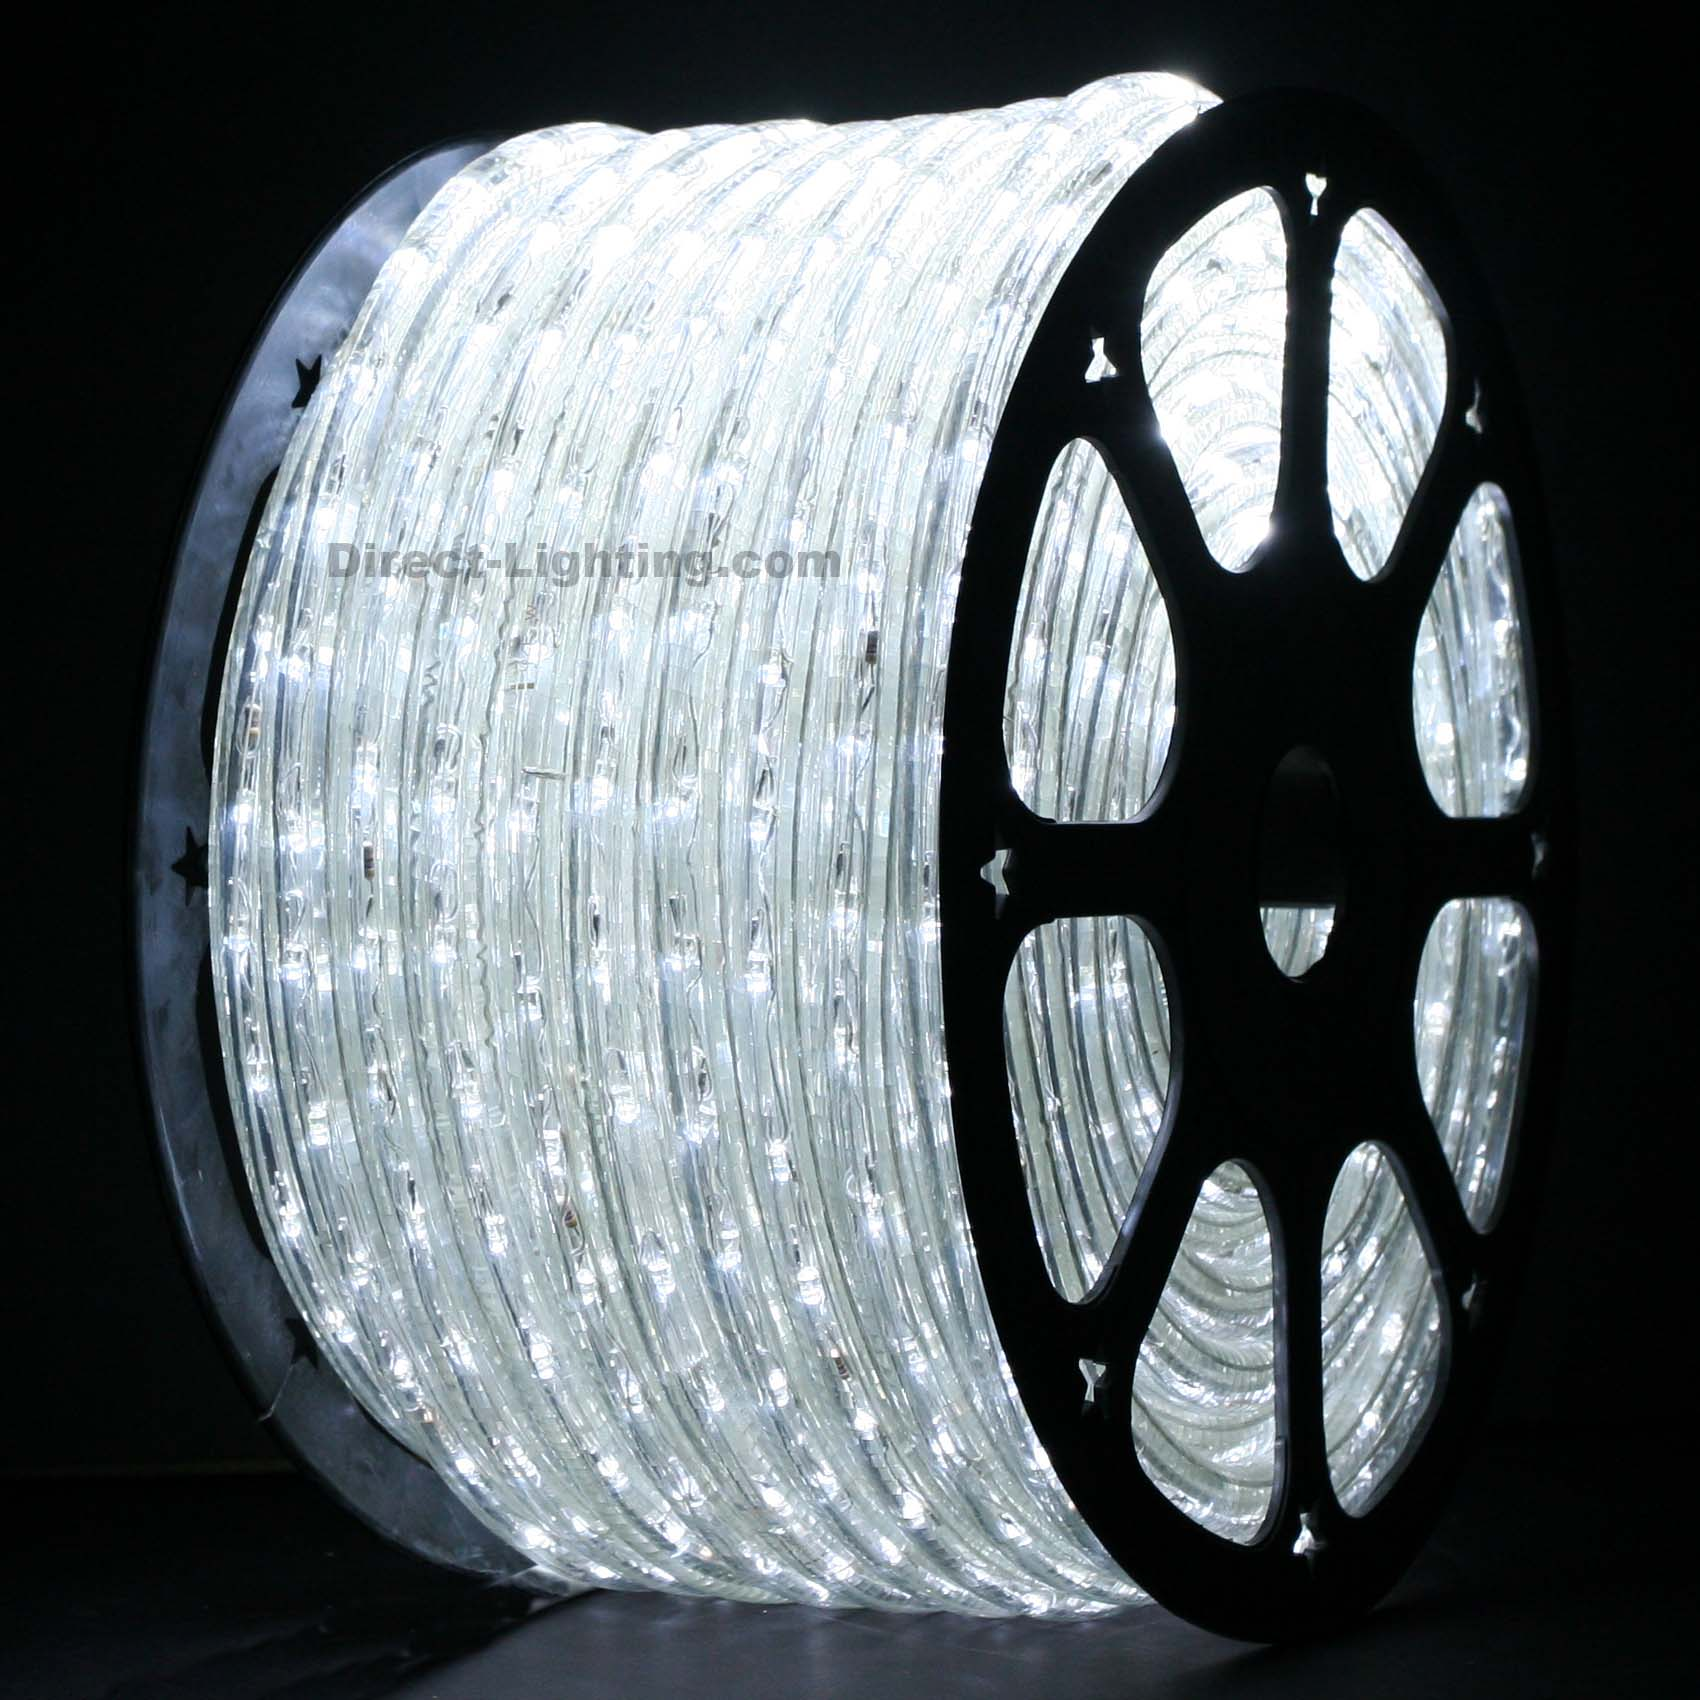 LED Rope Light H108 Cool White  LED Rope Lights, LED Rope Light, Affordable LED Rope Lights, LED Rope Light, Outdoor LED Rope Light, LED 120V, Cool White LED Rope Light